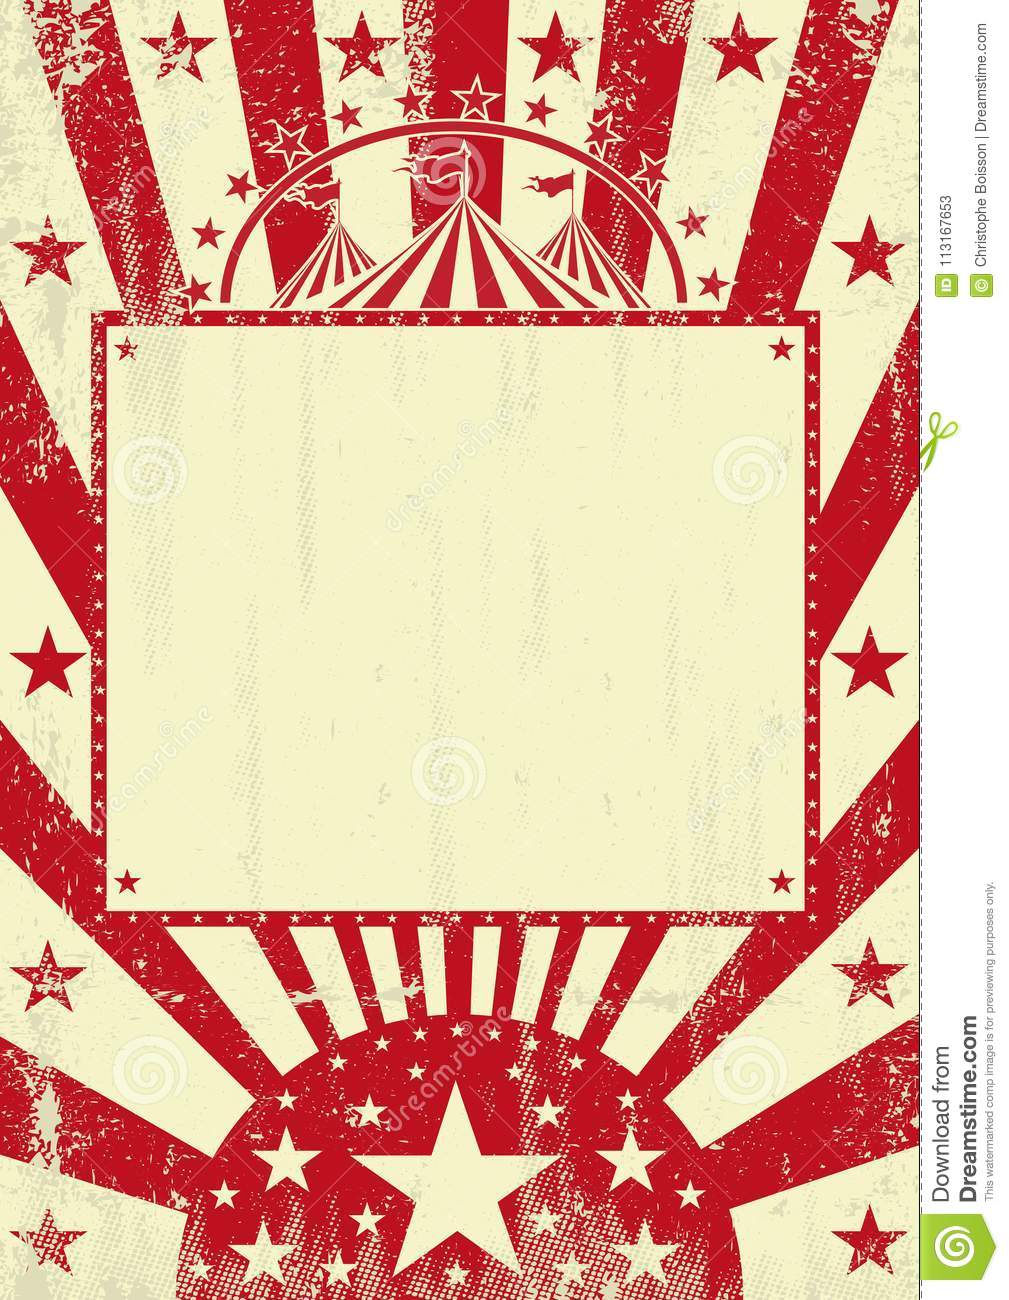 Circus Red Grunge Background Stock Vector - Illustration of show ...